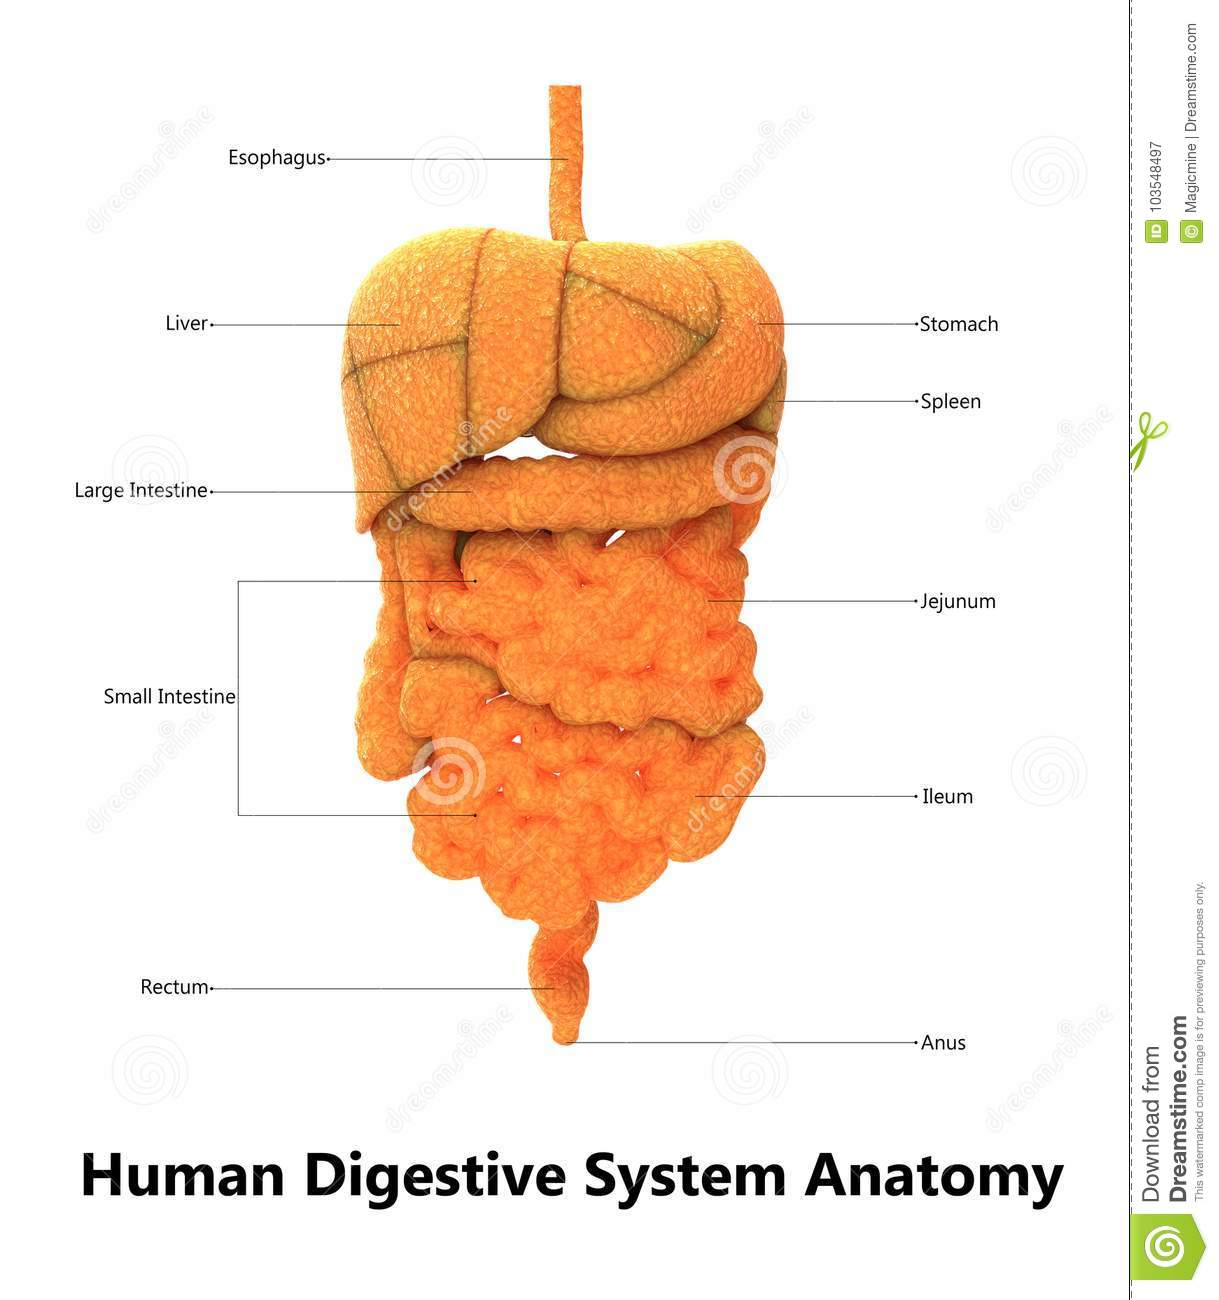 Human Digestive System Anatomy With Detailed Labels Stock